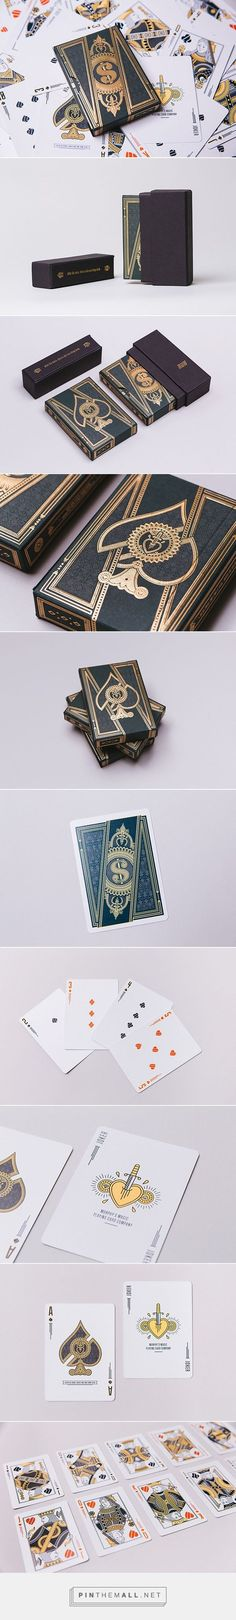 RUN Playing Cards by Chris Yoon